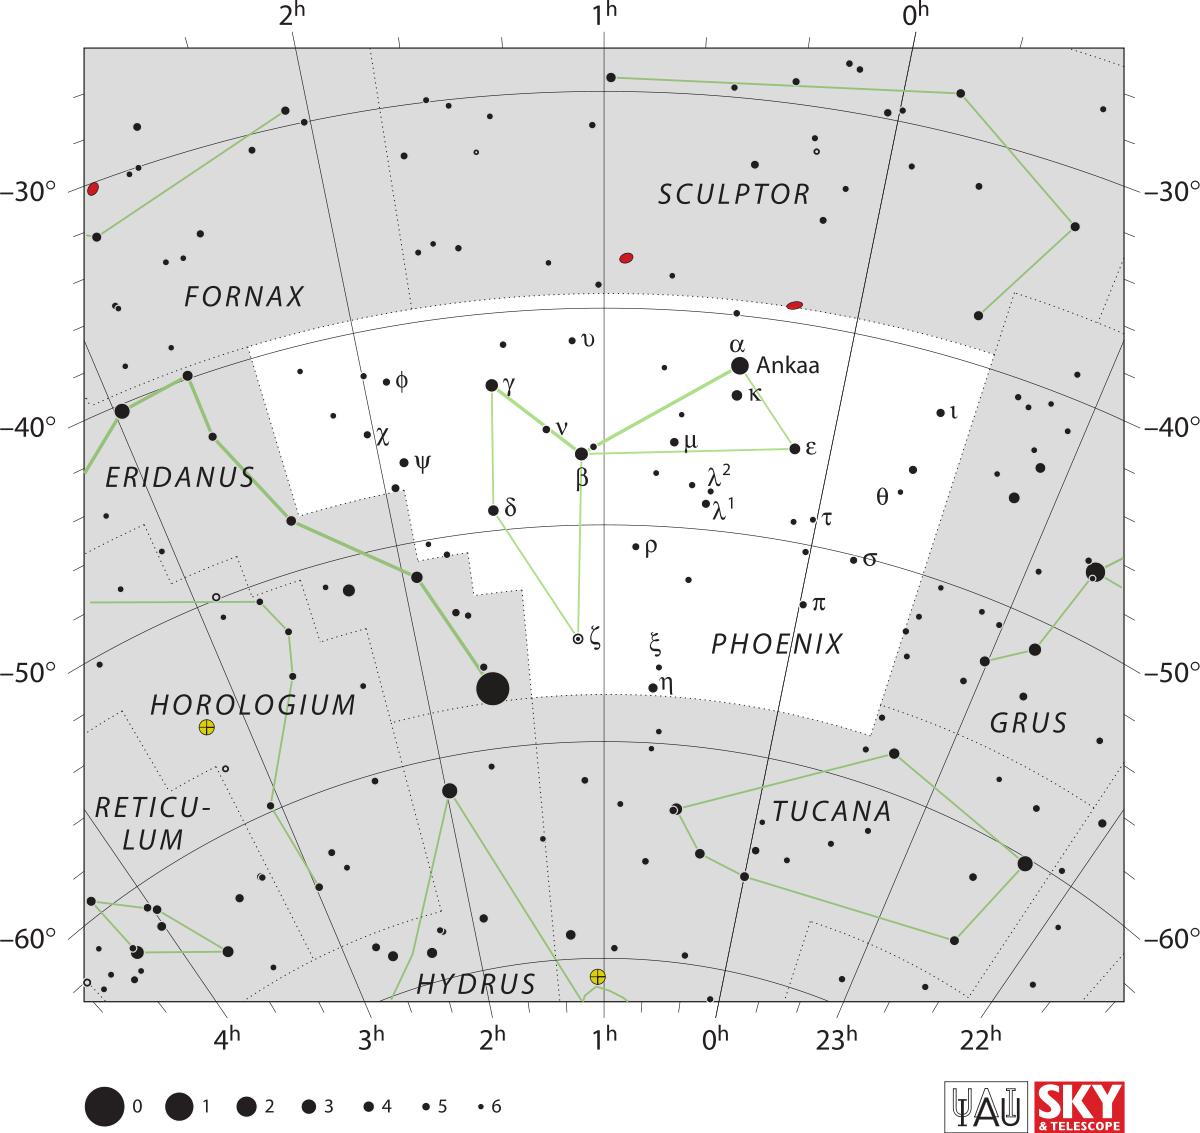 Constellations drawing old. Phoenix constellation wikipedia